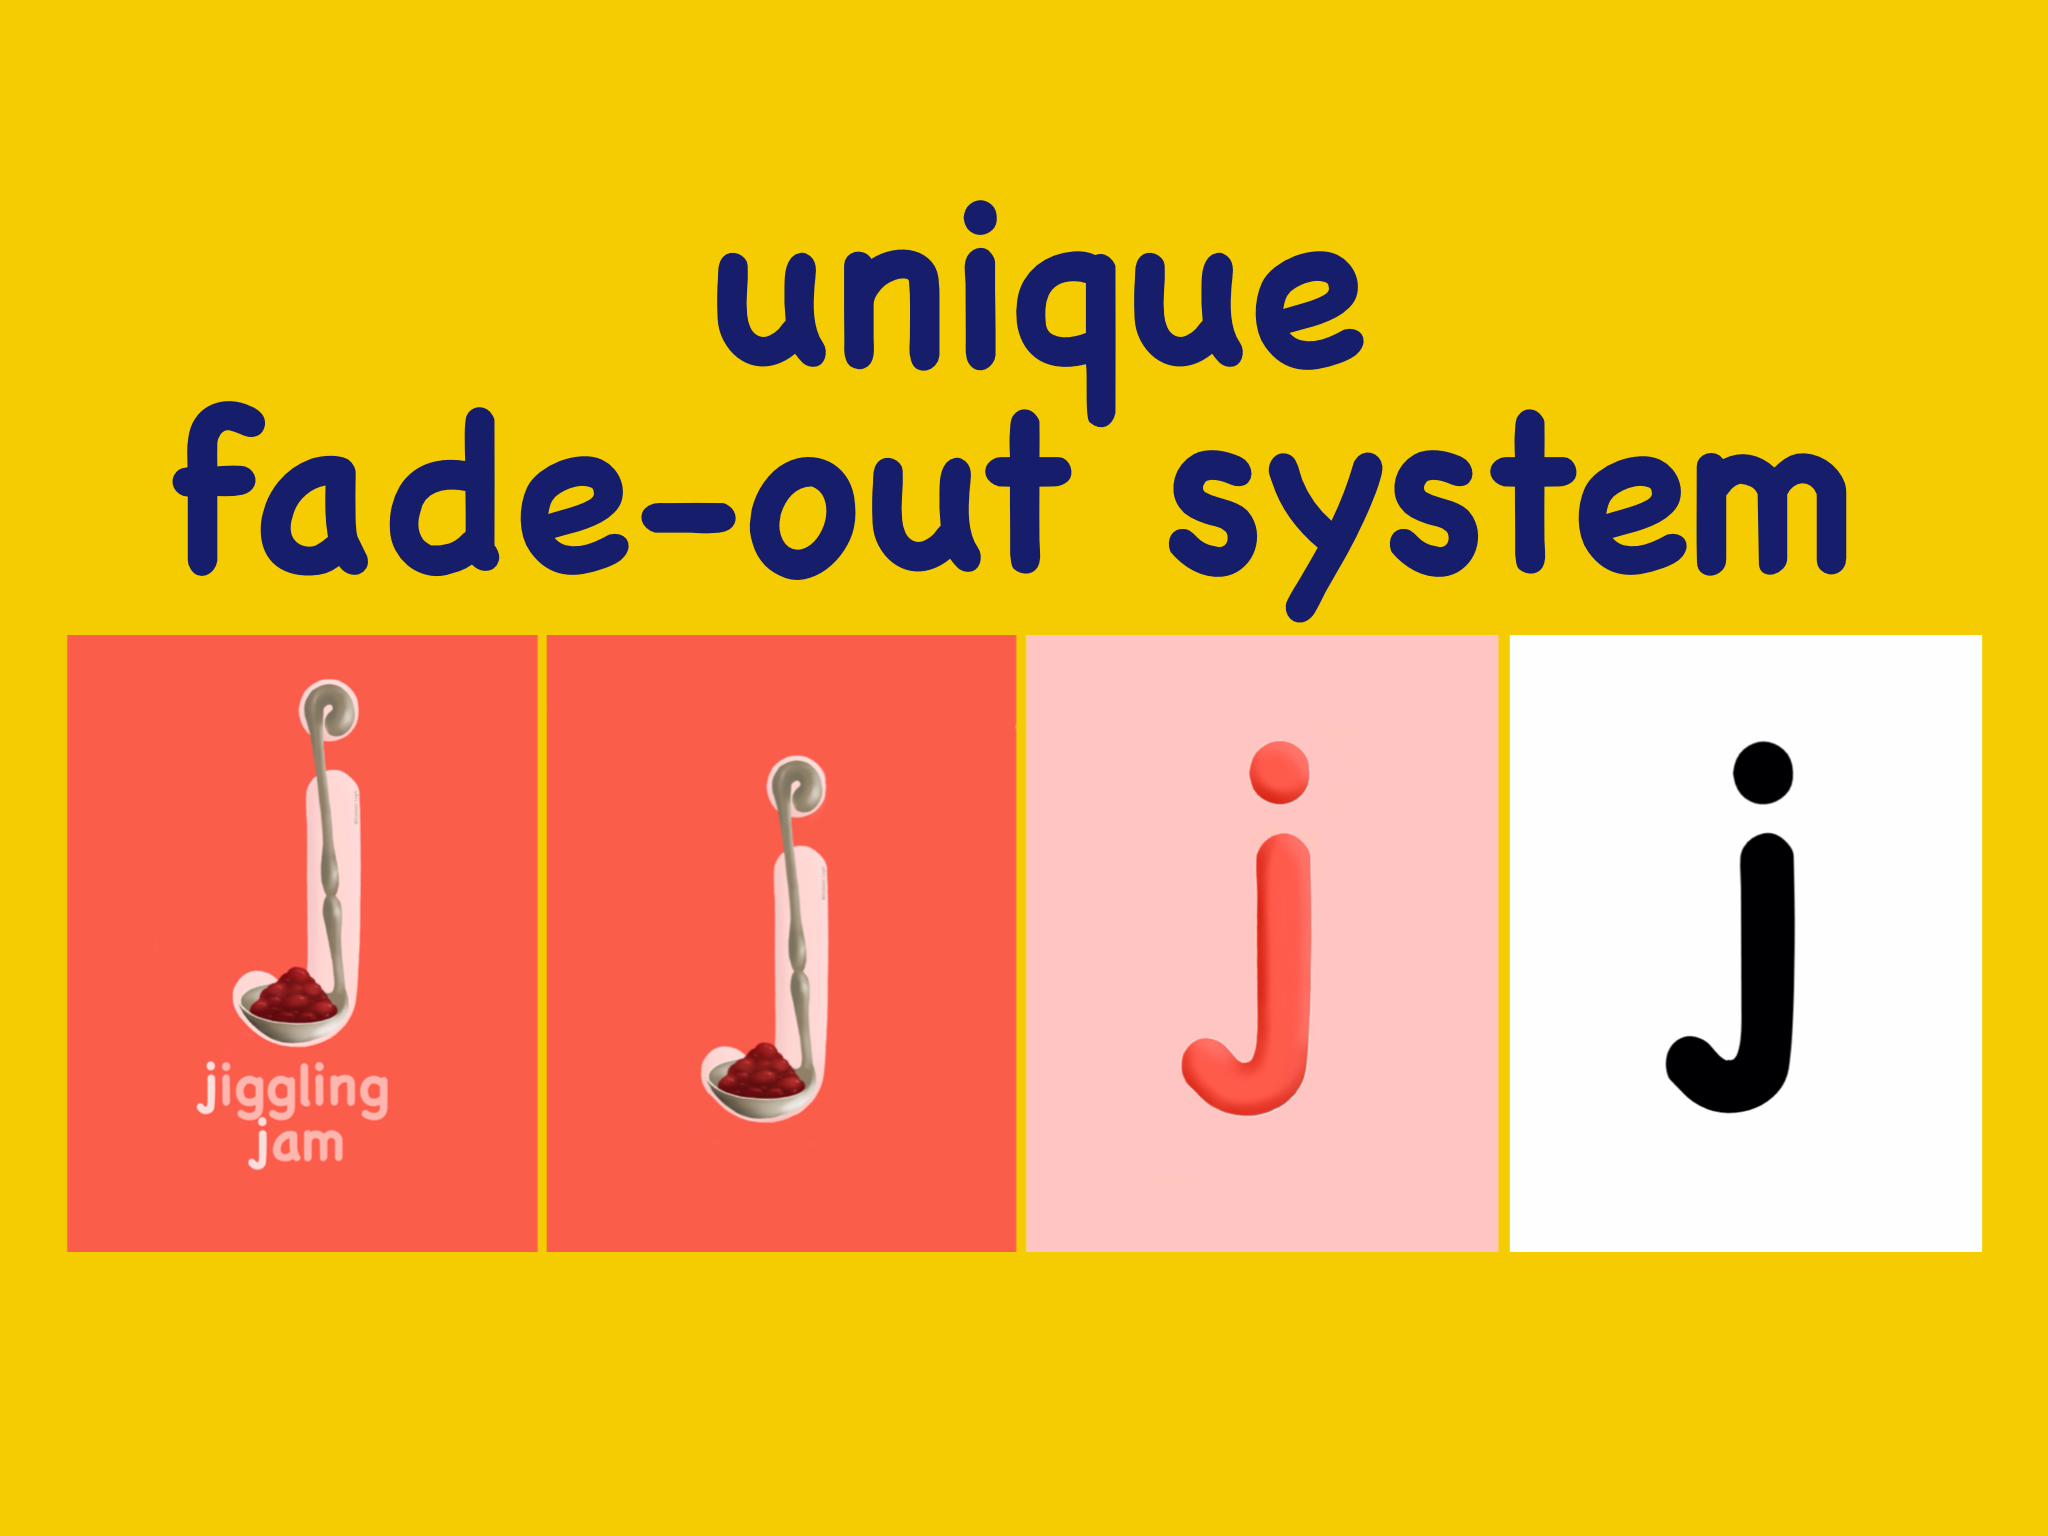 the fade out system allows for smaller incremental steps.